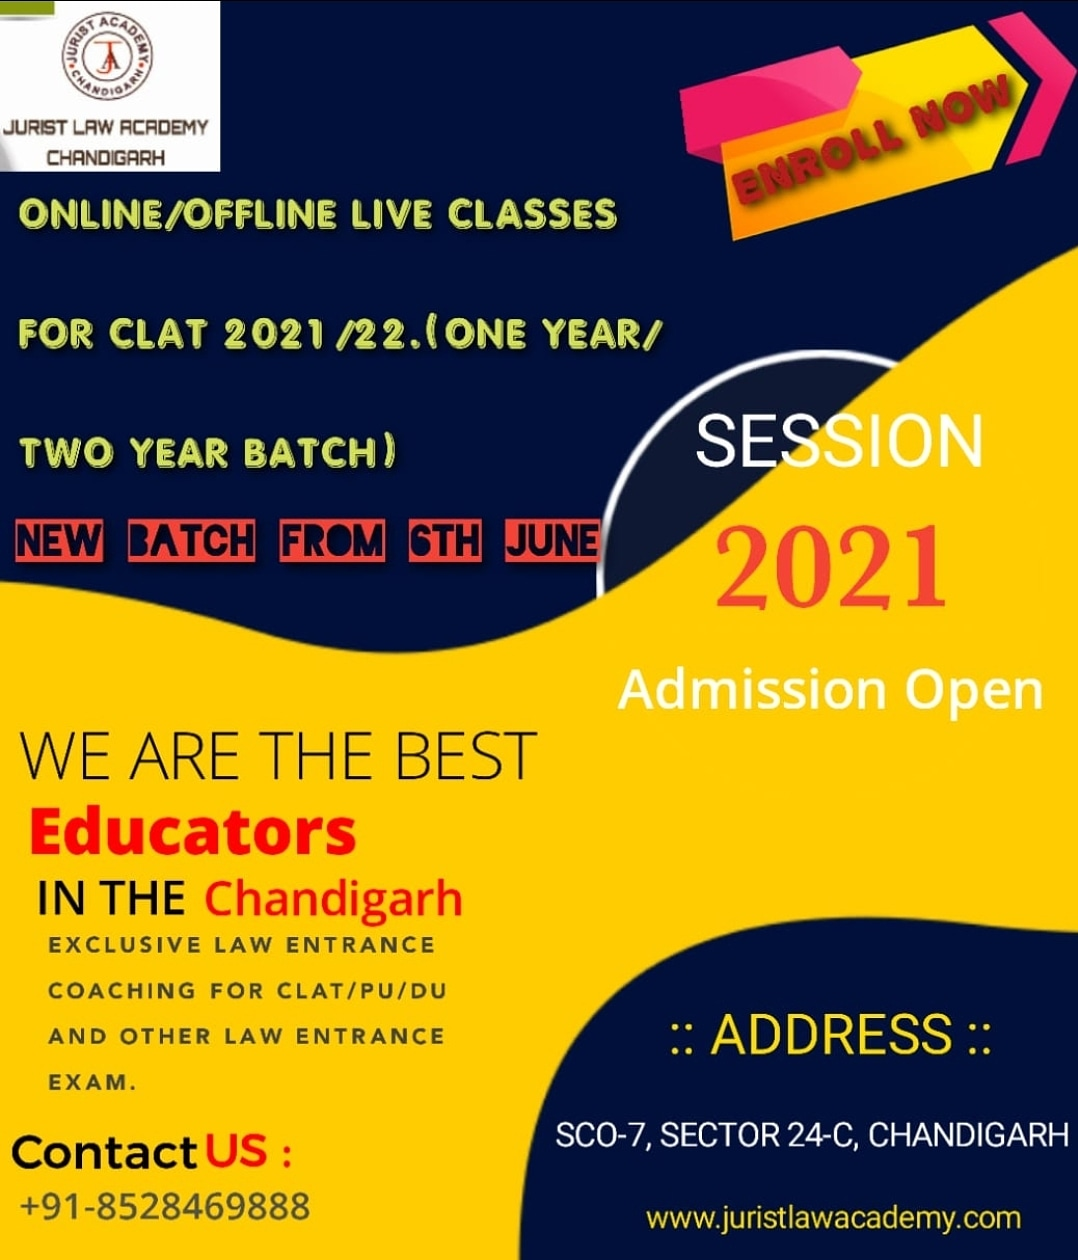 JURIST LAW ACADEMY, best online clat exam coaching in india|| best online clat coaching institute in india|| clat online coaching institute||  online clat coaching institute||  best law entrance coaching institute